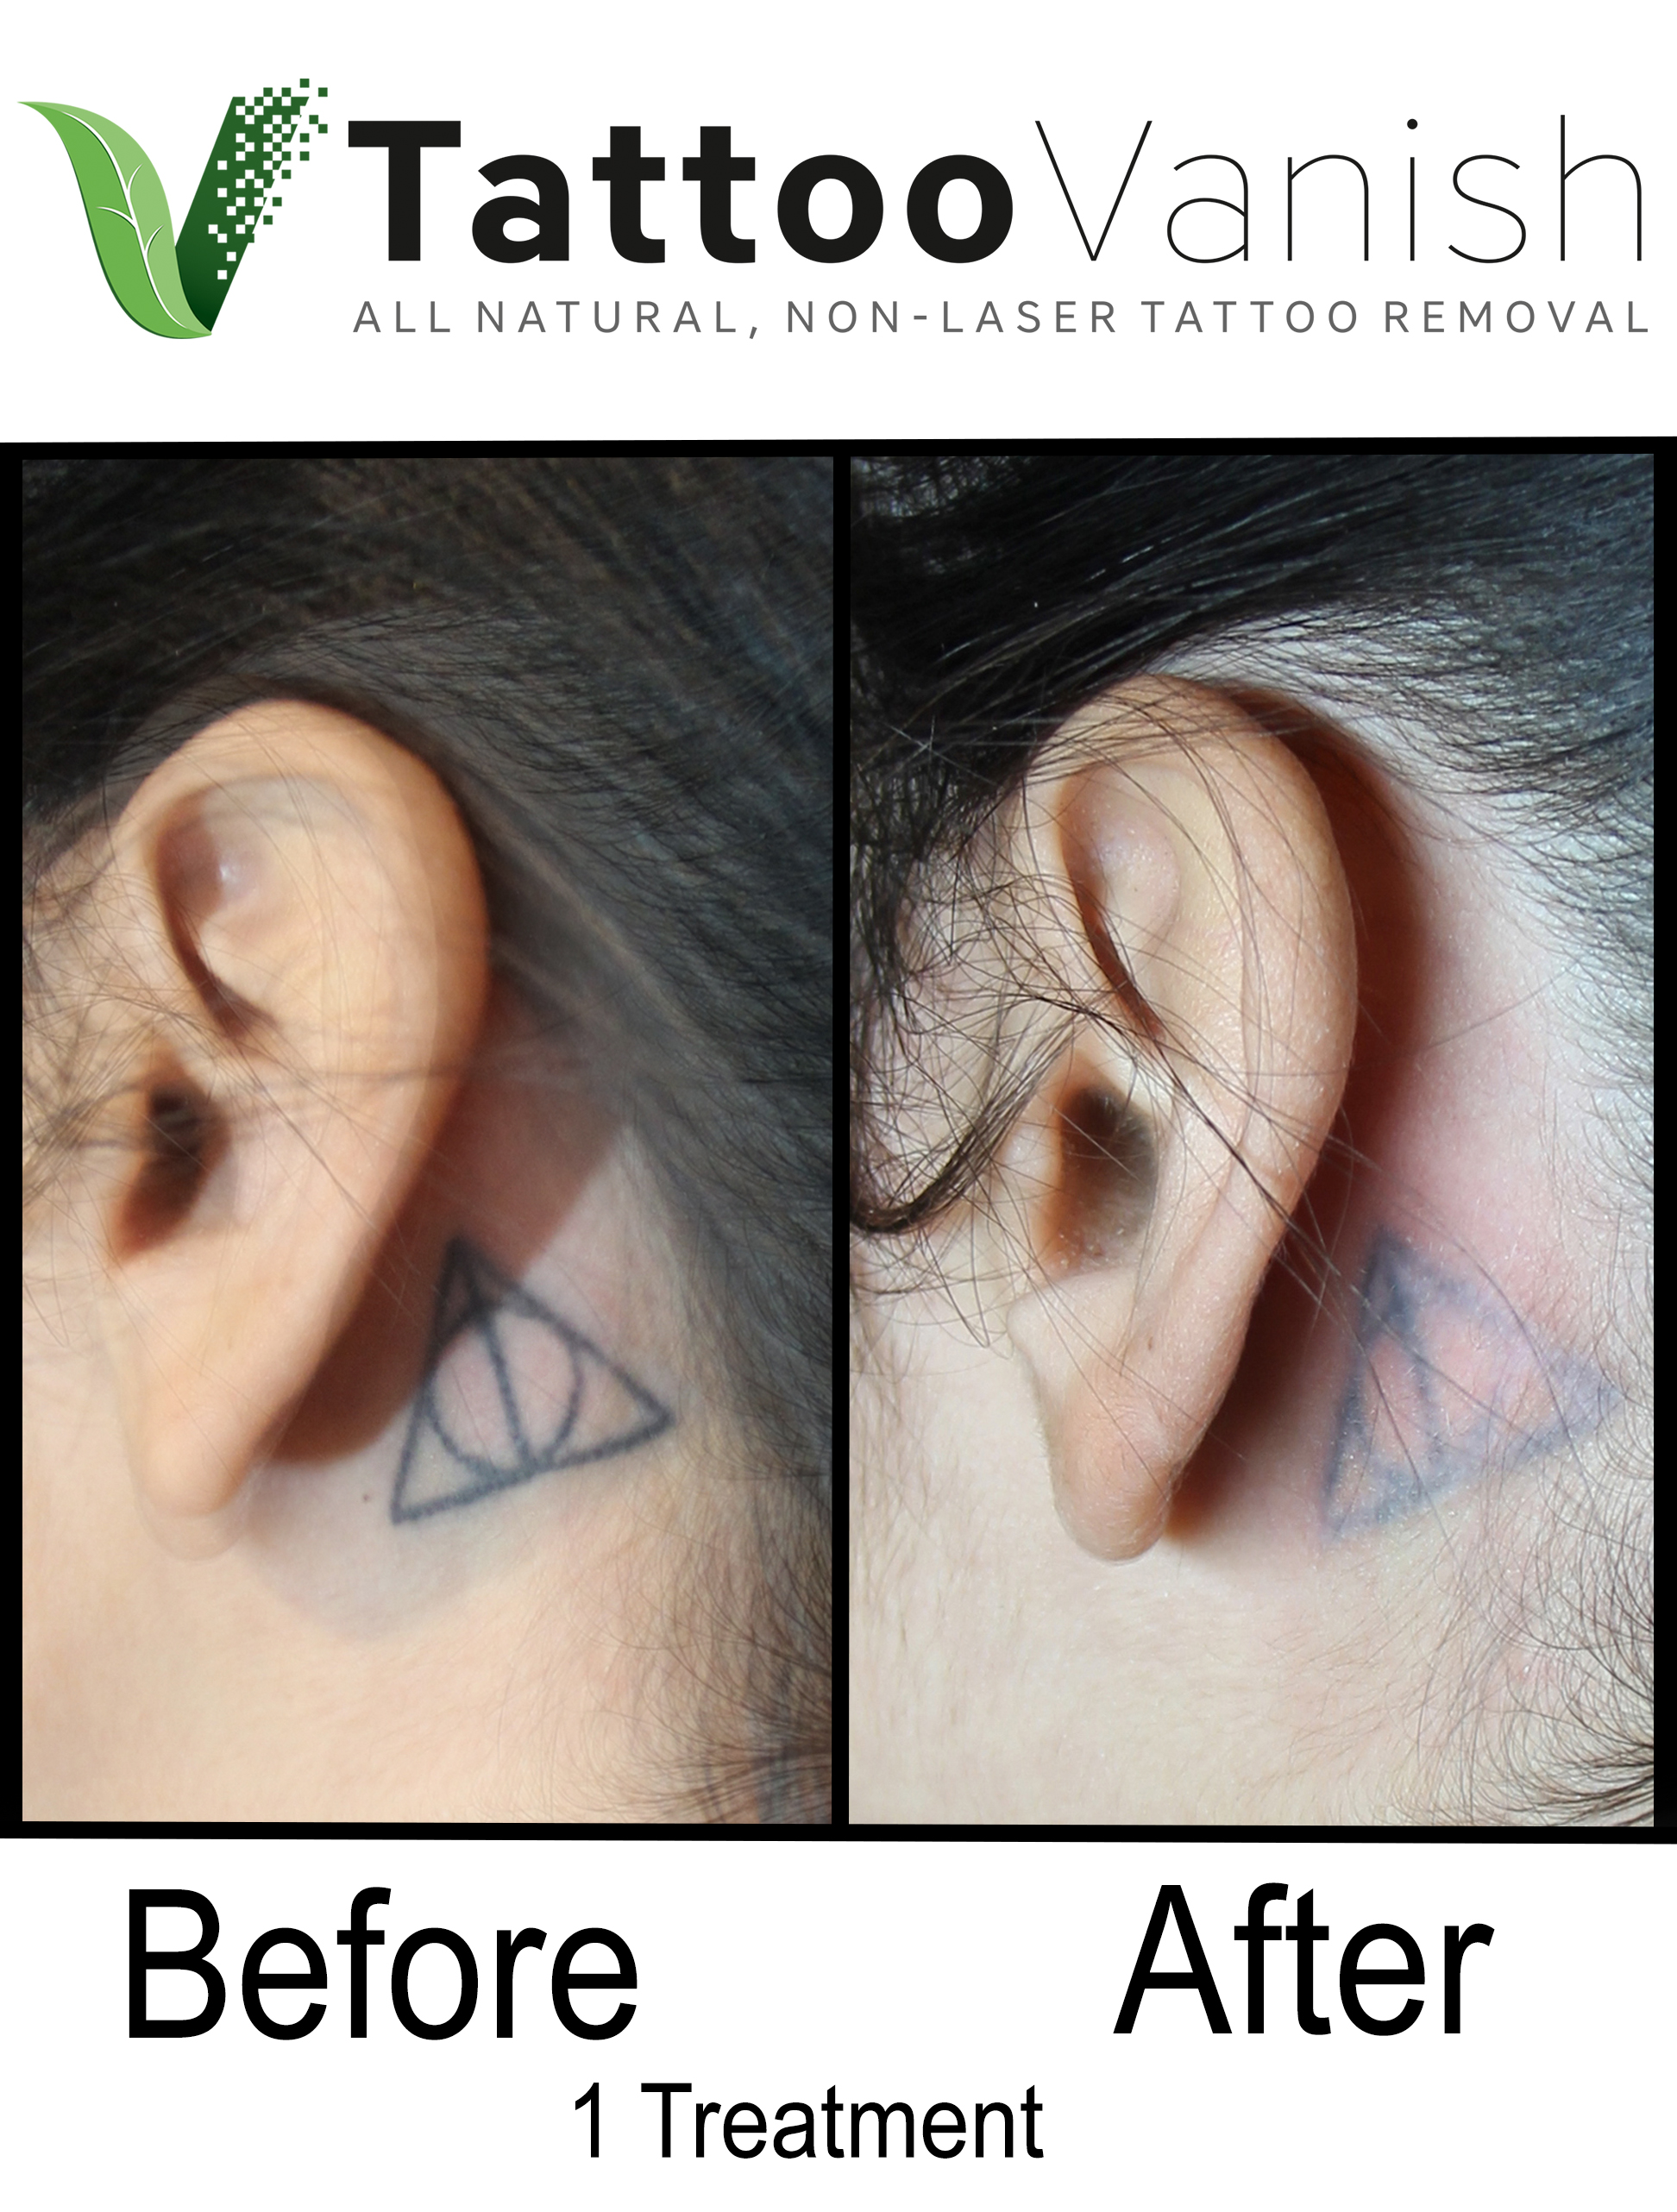 Best Tattoo Removal in Miami | First All-Natural Tattoo Removal